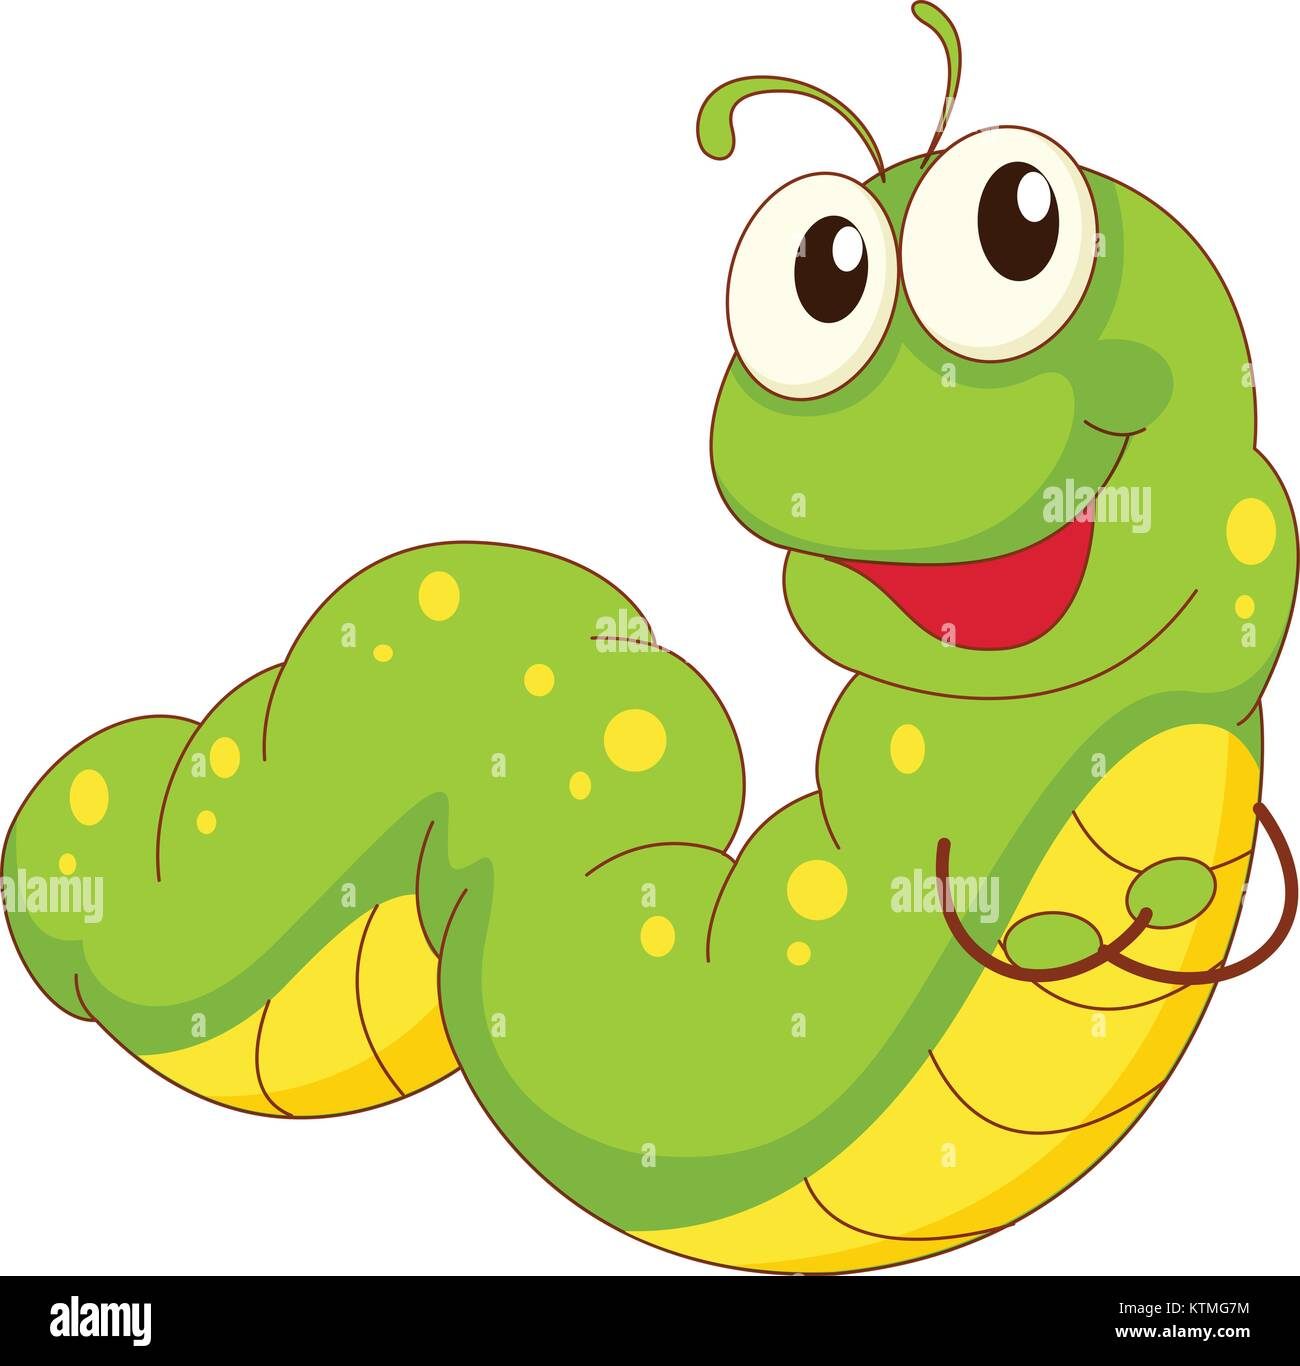 Illustration Of A Green Caterpillar Cartoon Stock Vector Image